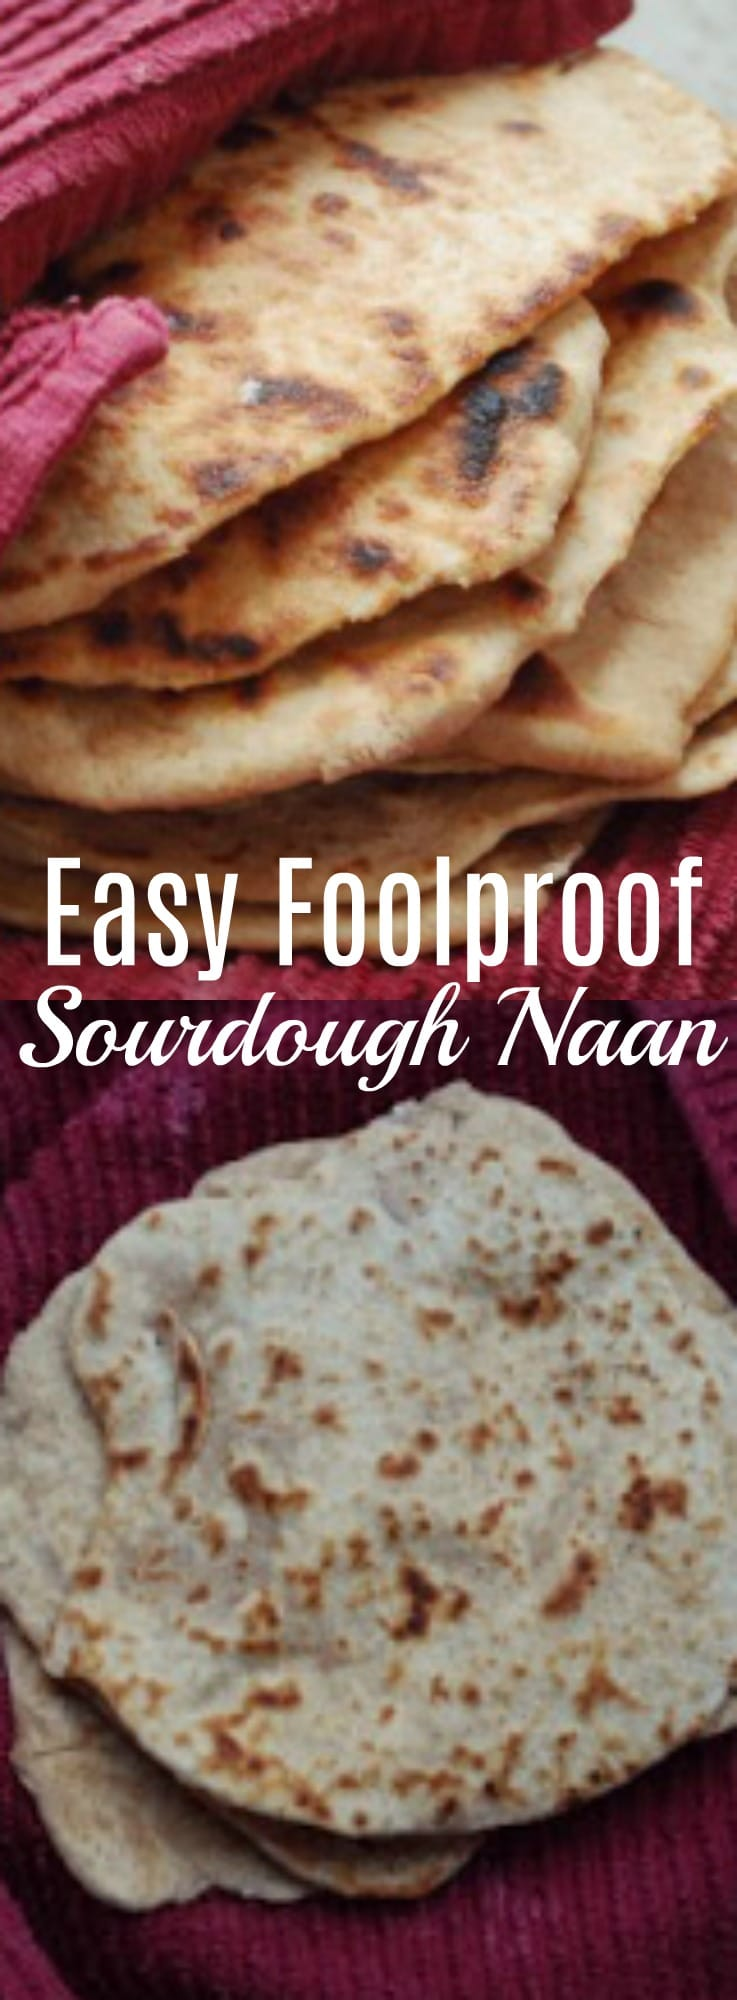 This sourdough naan recipe is so easy its foolproof! Delicious and flavorful naan is right around the corner with this great recipe! 